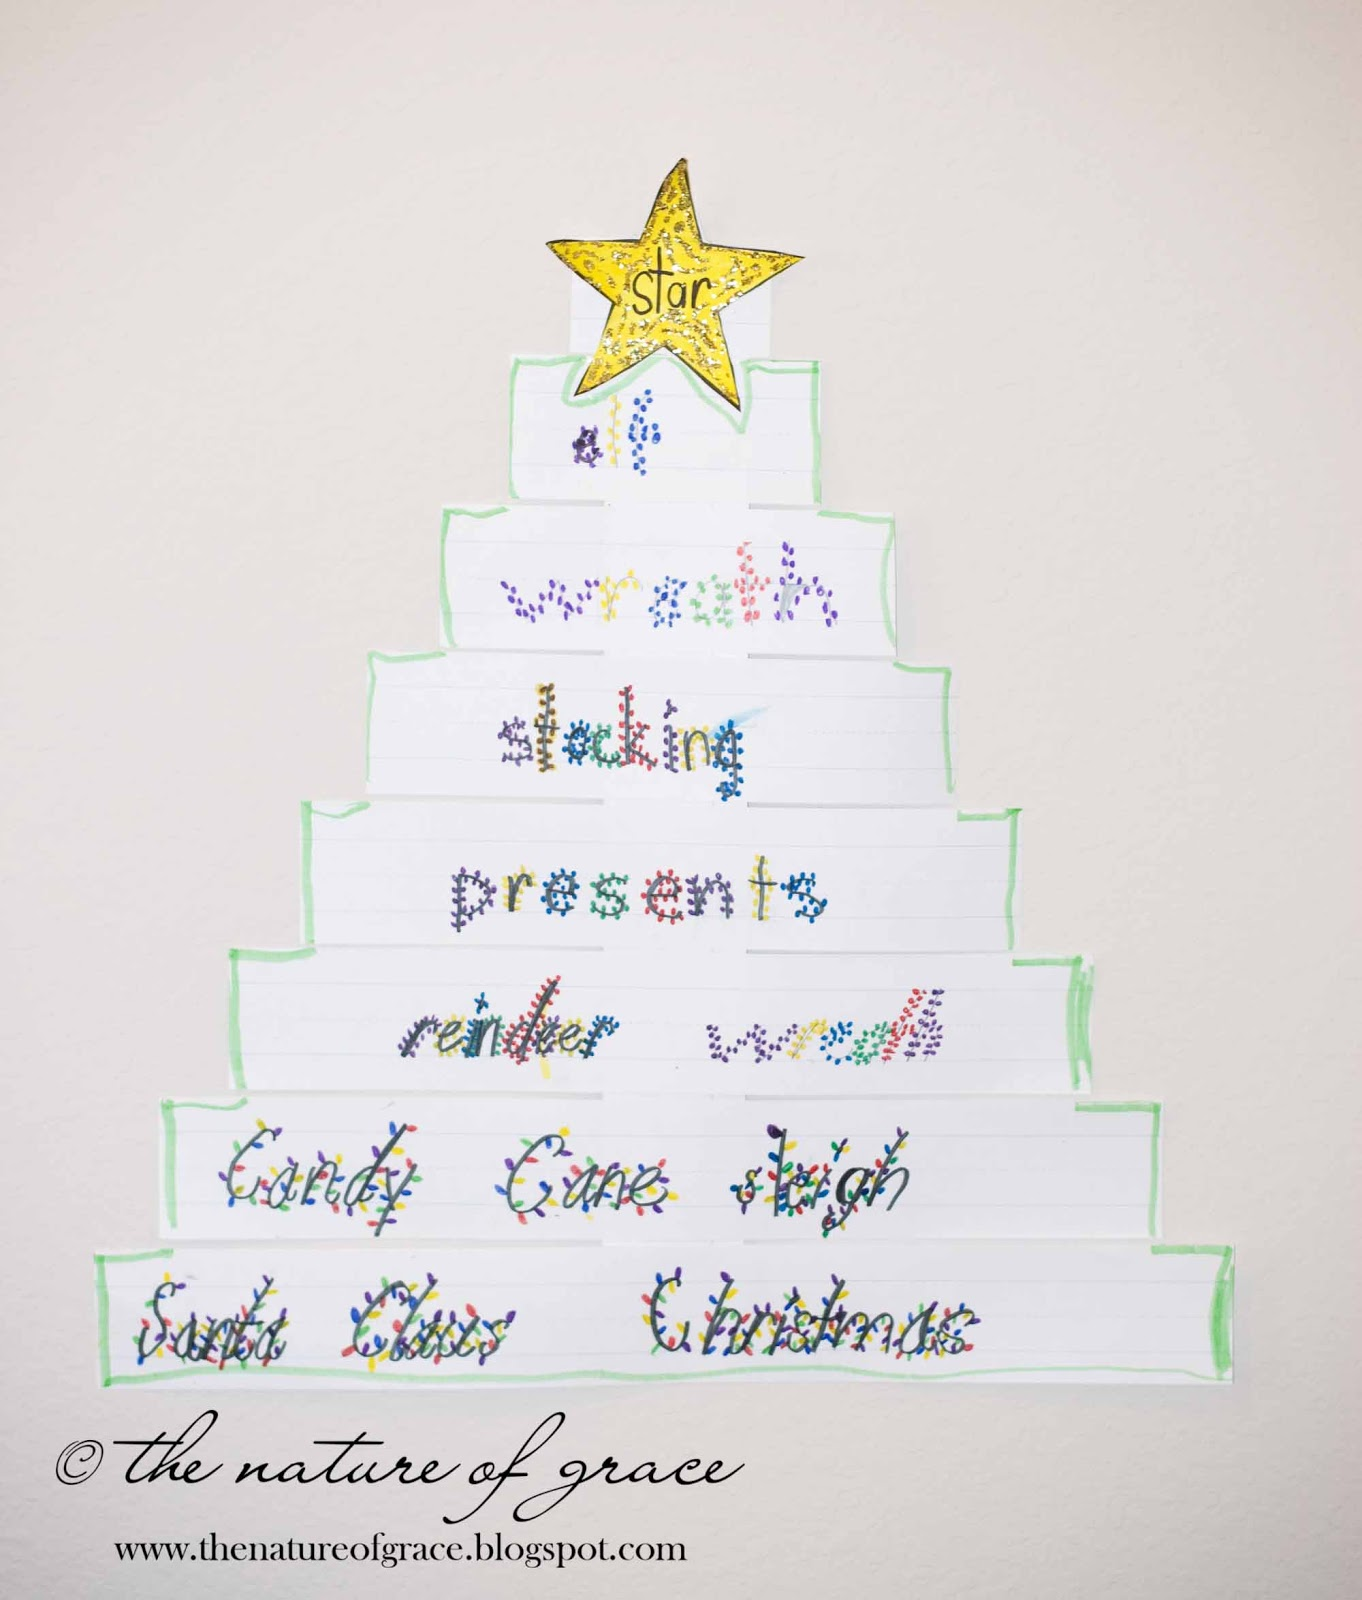 Christmas Spelling Words.The Nature Of Grace Lesson Theme Christmas